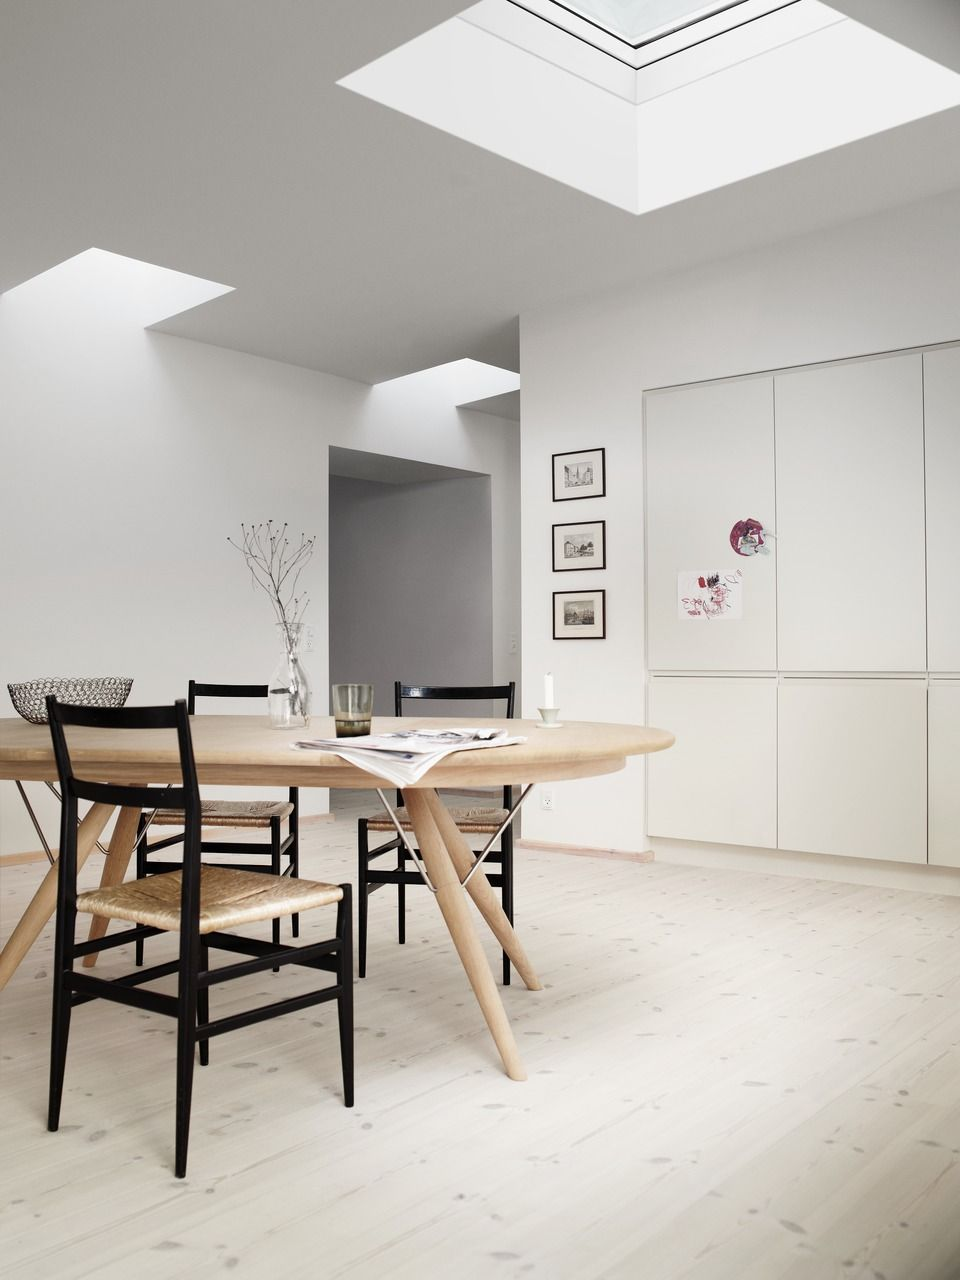 Flood Flat Roof Rooms With Natural Light Fresh Air